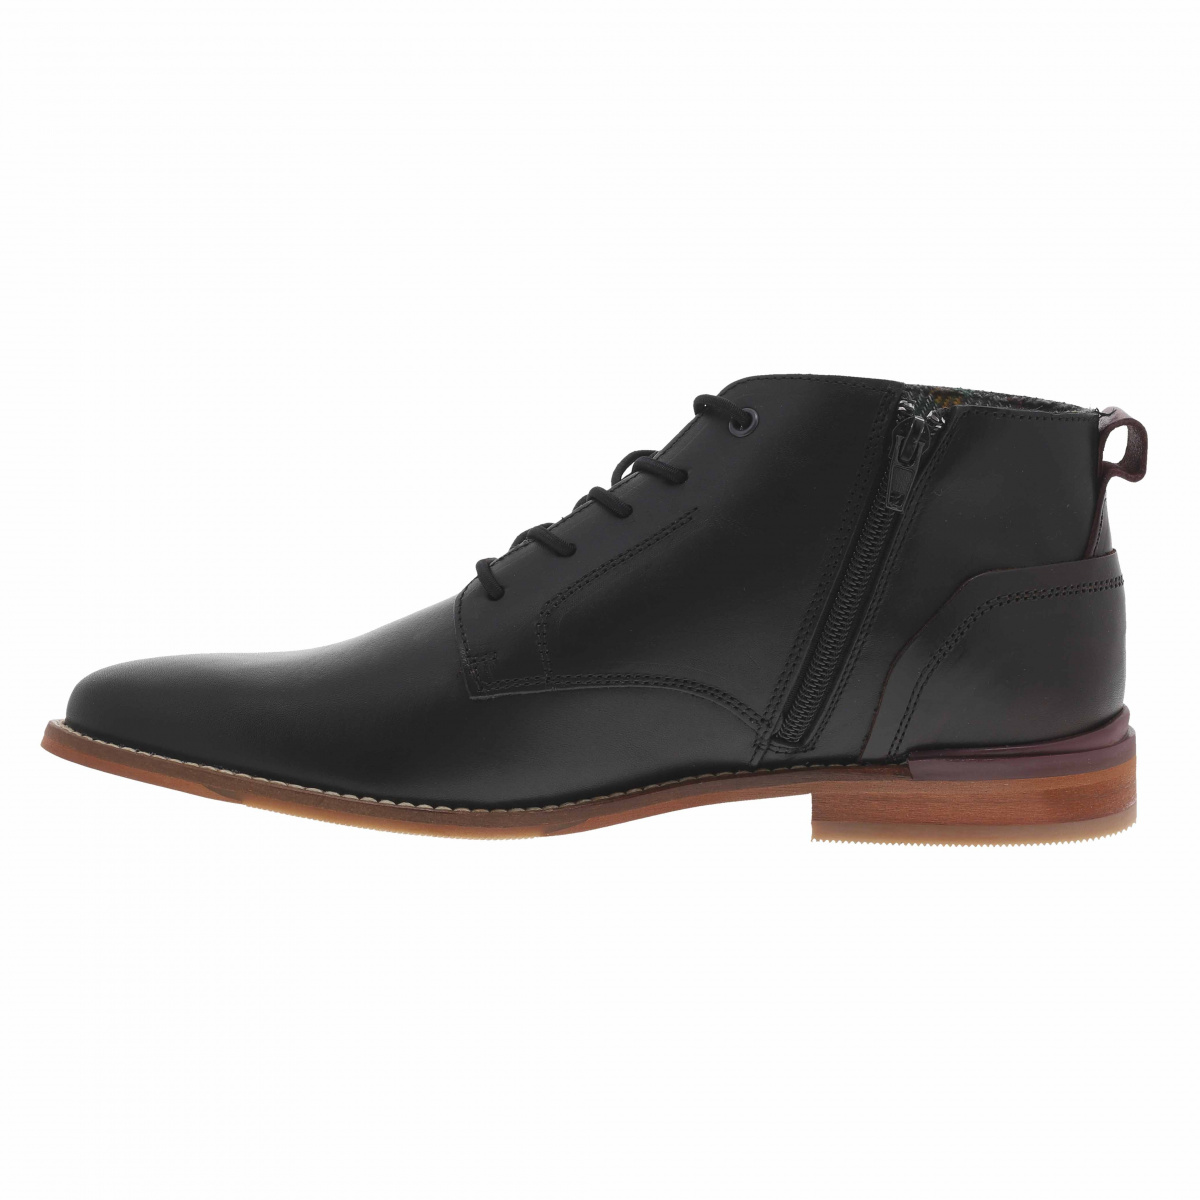 Boots cuir BULLBOXER